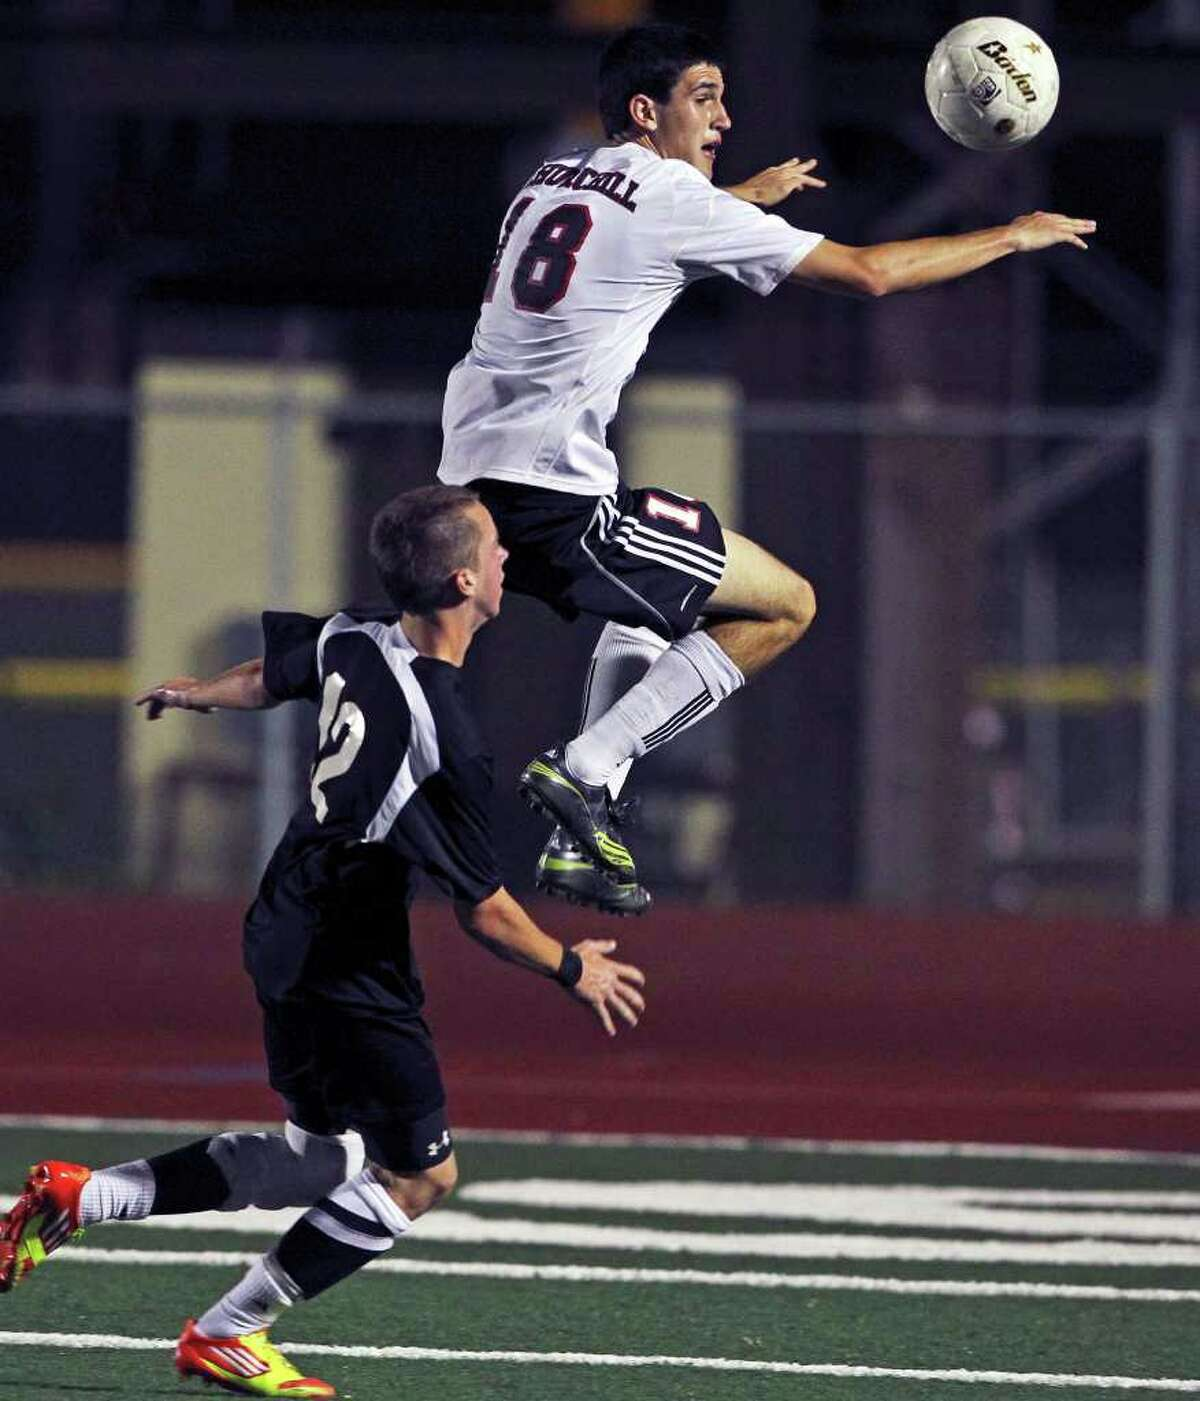 Churchill's Brandon Severyn leaps to control in front of Steele's Austin Schlather (12) as Churchill plays Steele in boys and girls playoff soccer at Comalander Stadium on April 3, 2012. Tom Reel/ San Antonio Express-News